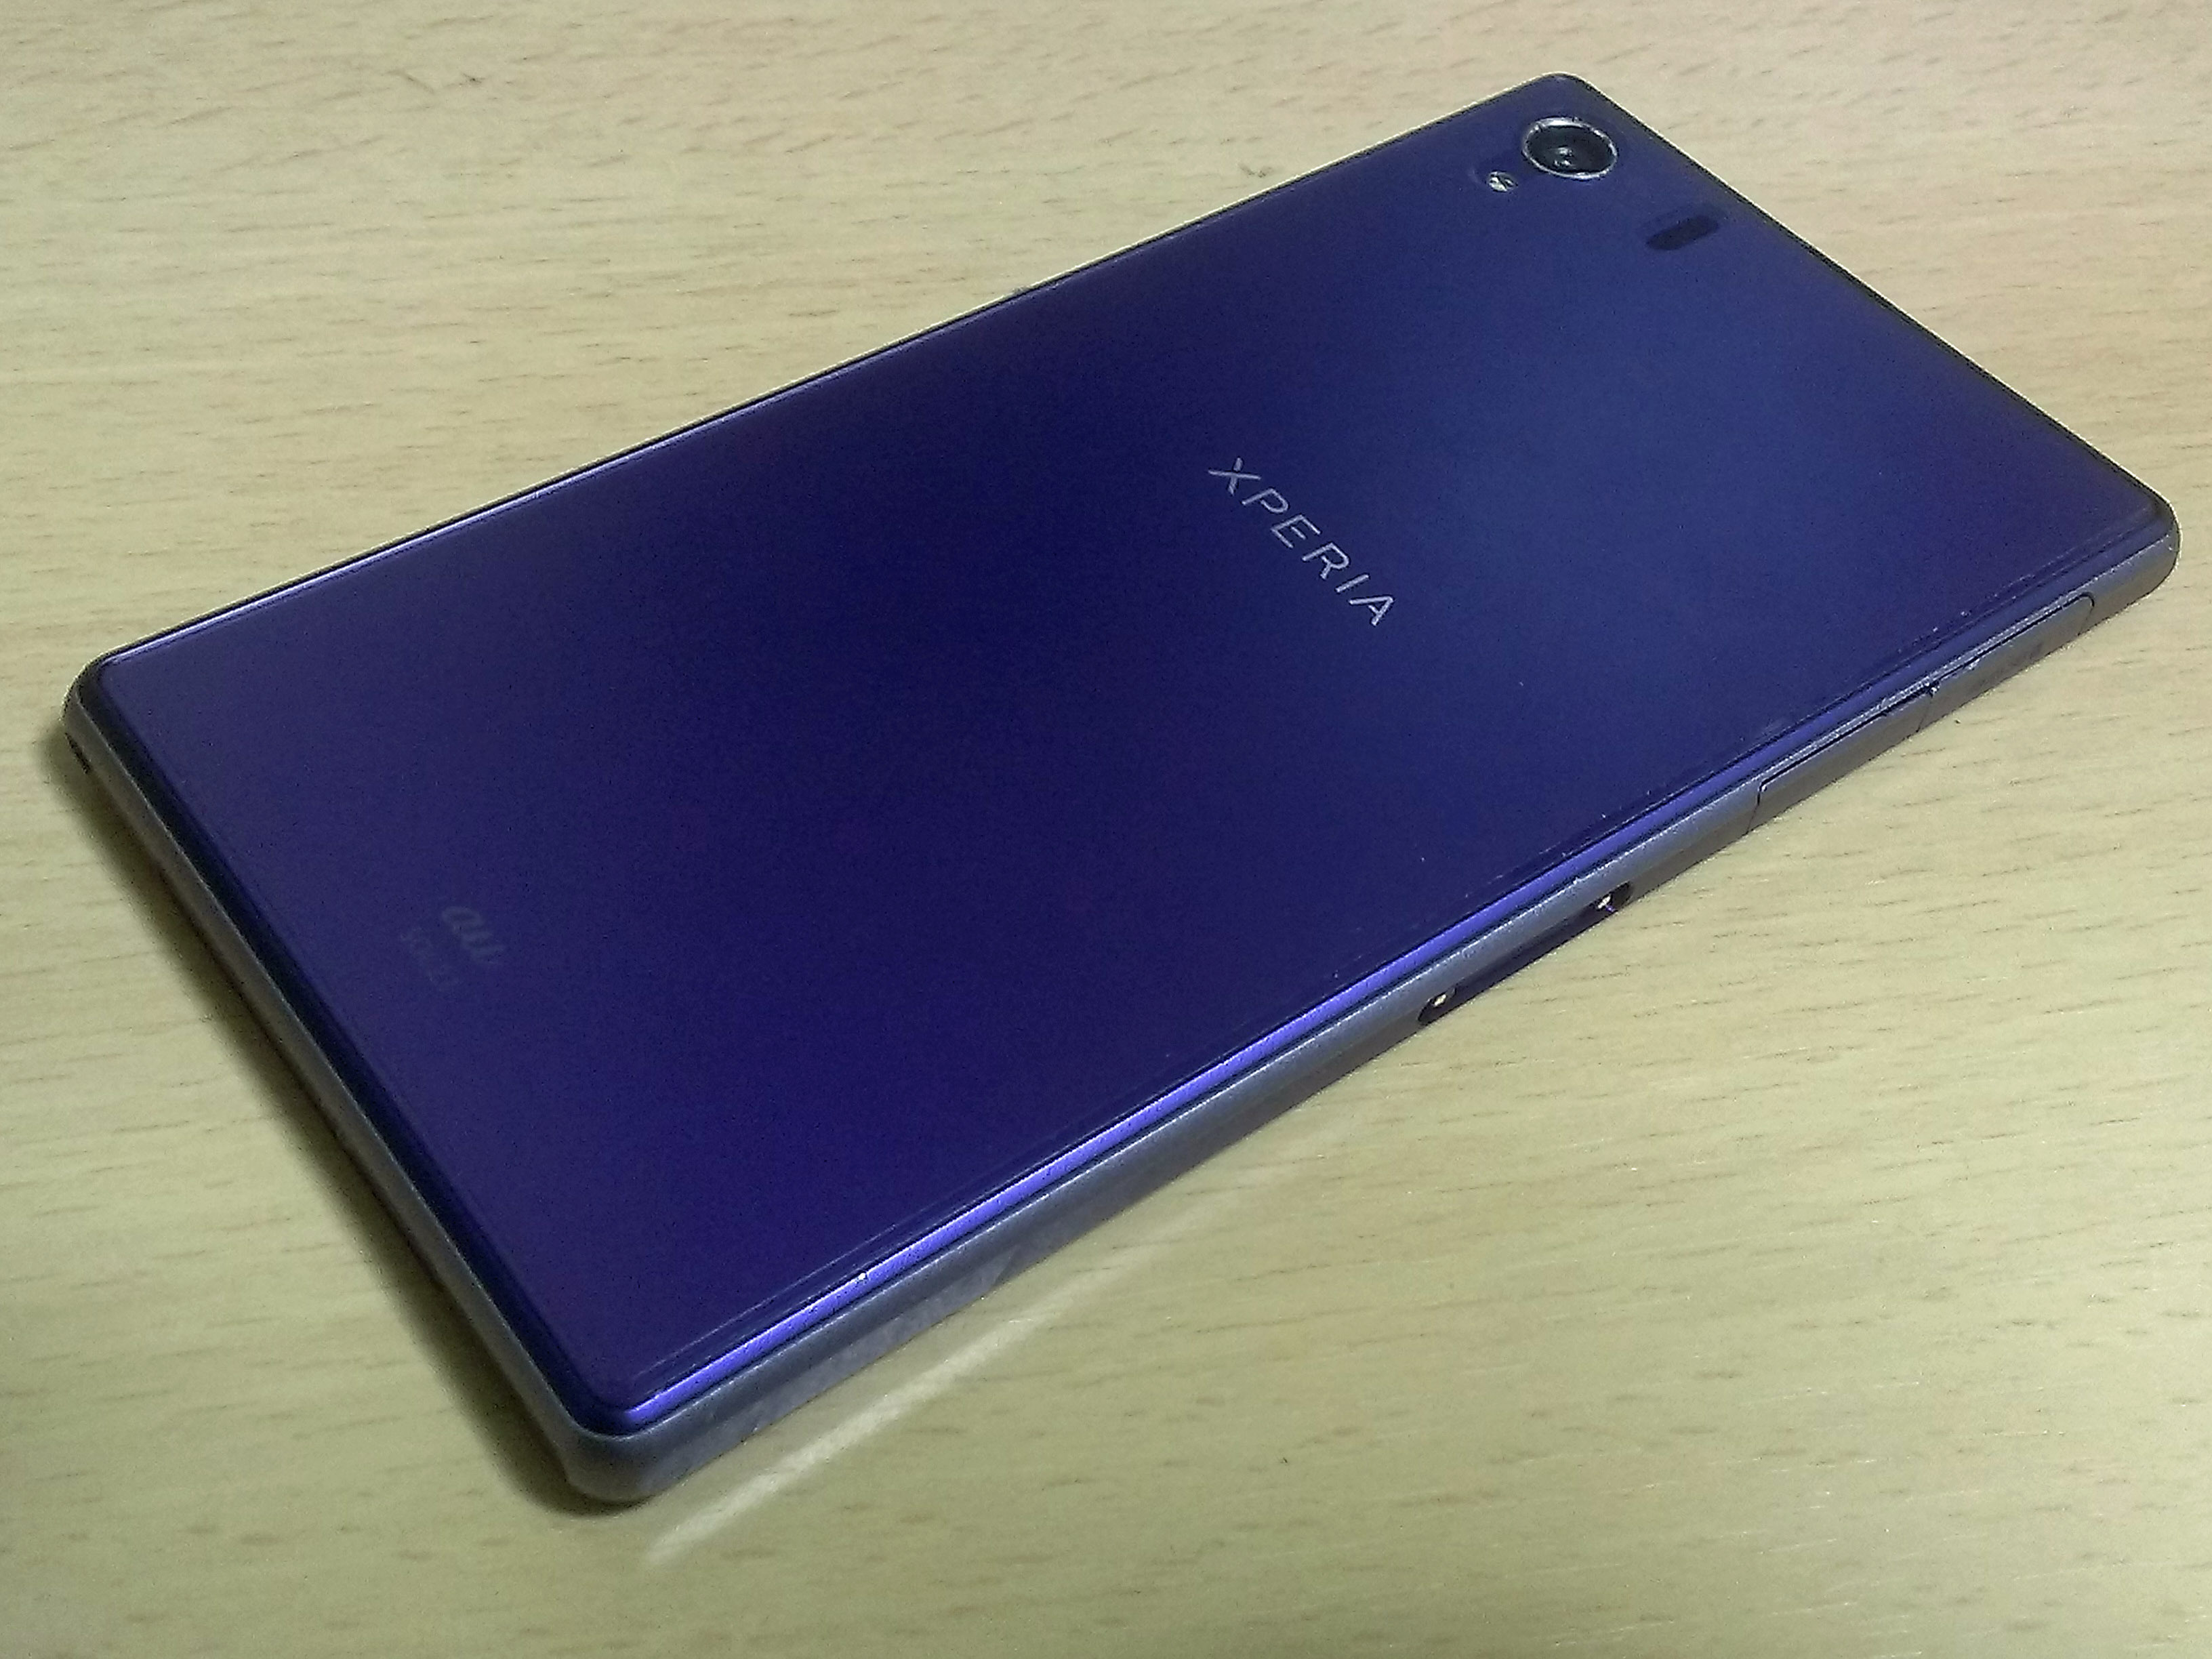 How to Root Xperia Z1 5.1.1 Lollipop Stock ROM